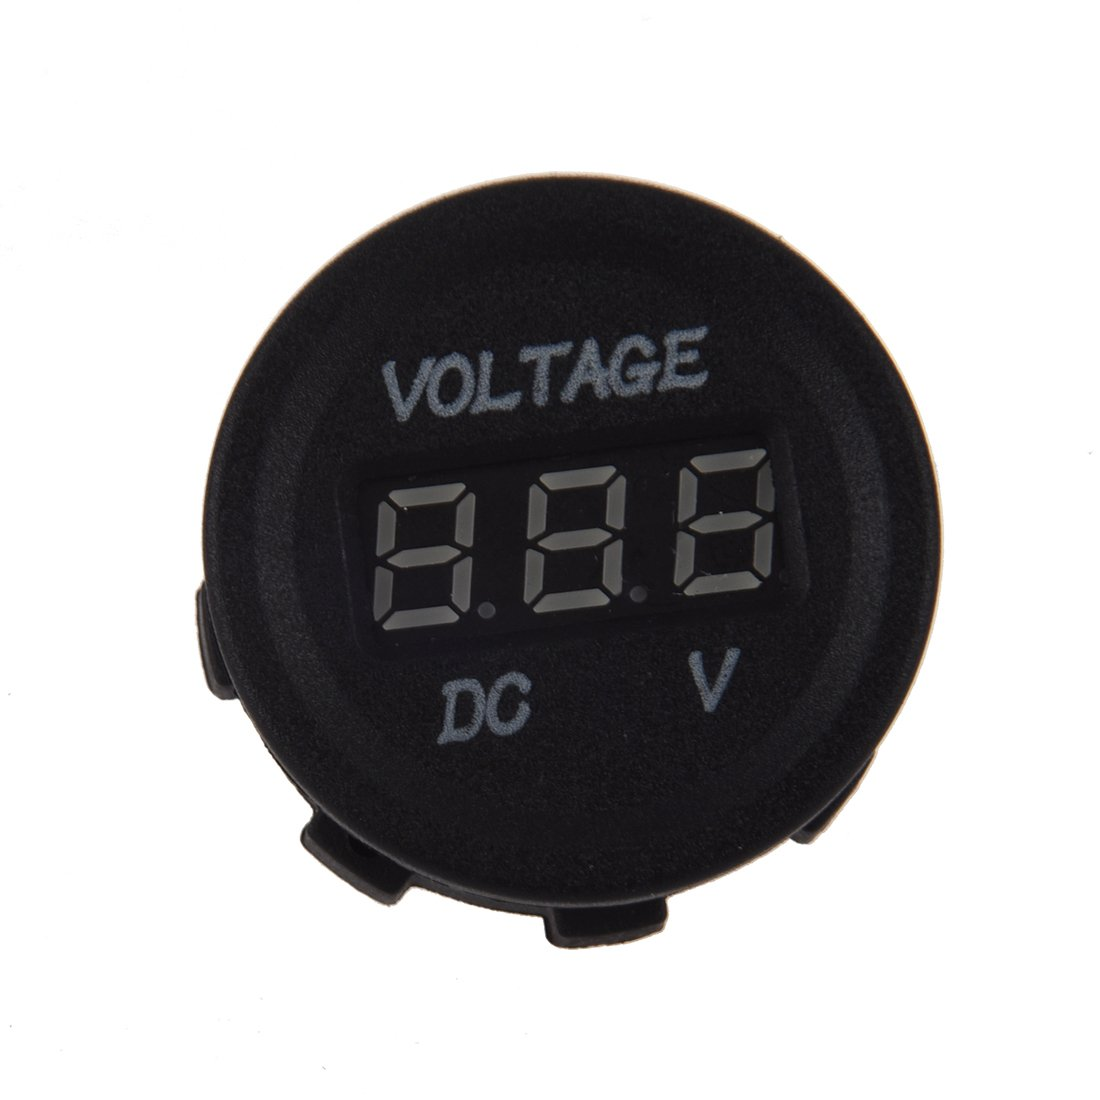 Voltage Meter - SODIAL(R) DC 12V-24V Motorcycle LED Digital Display Voltmeter Voltage Meter Round Panel(Red LED Display) 058429